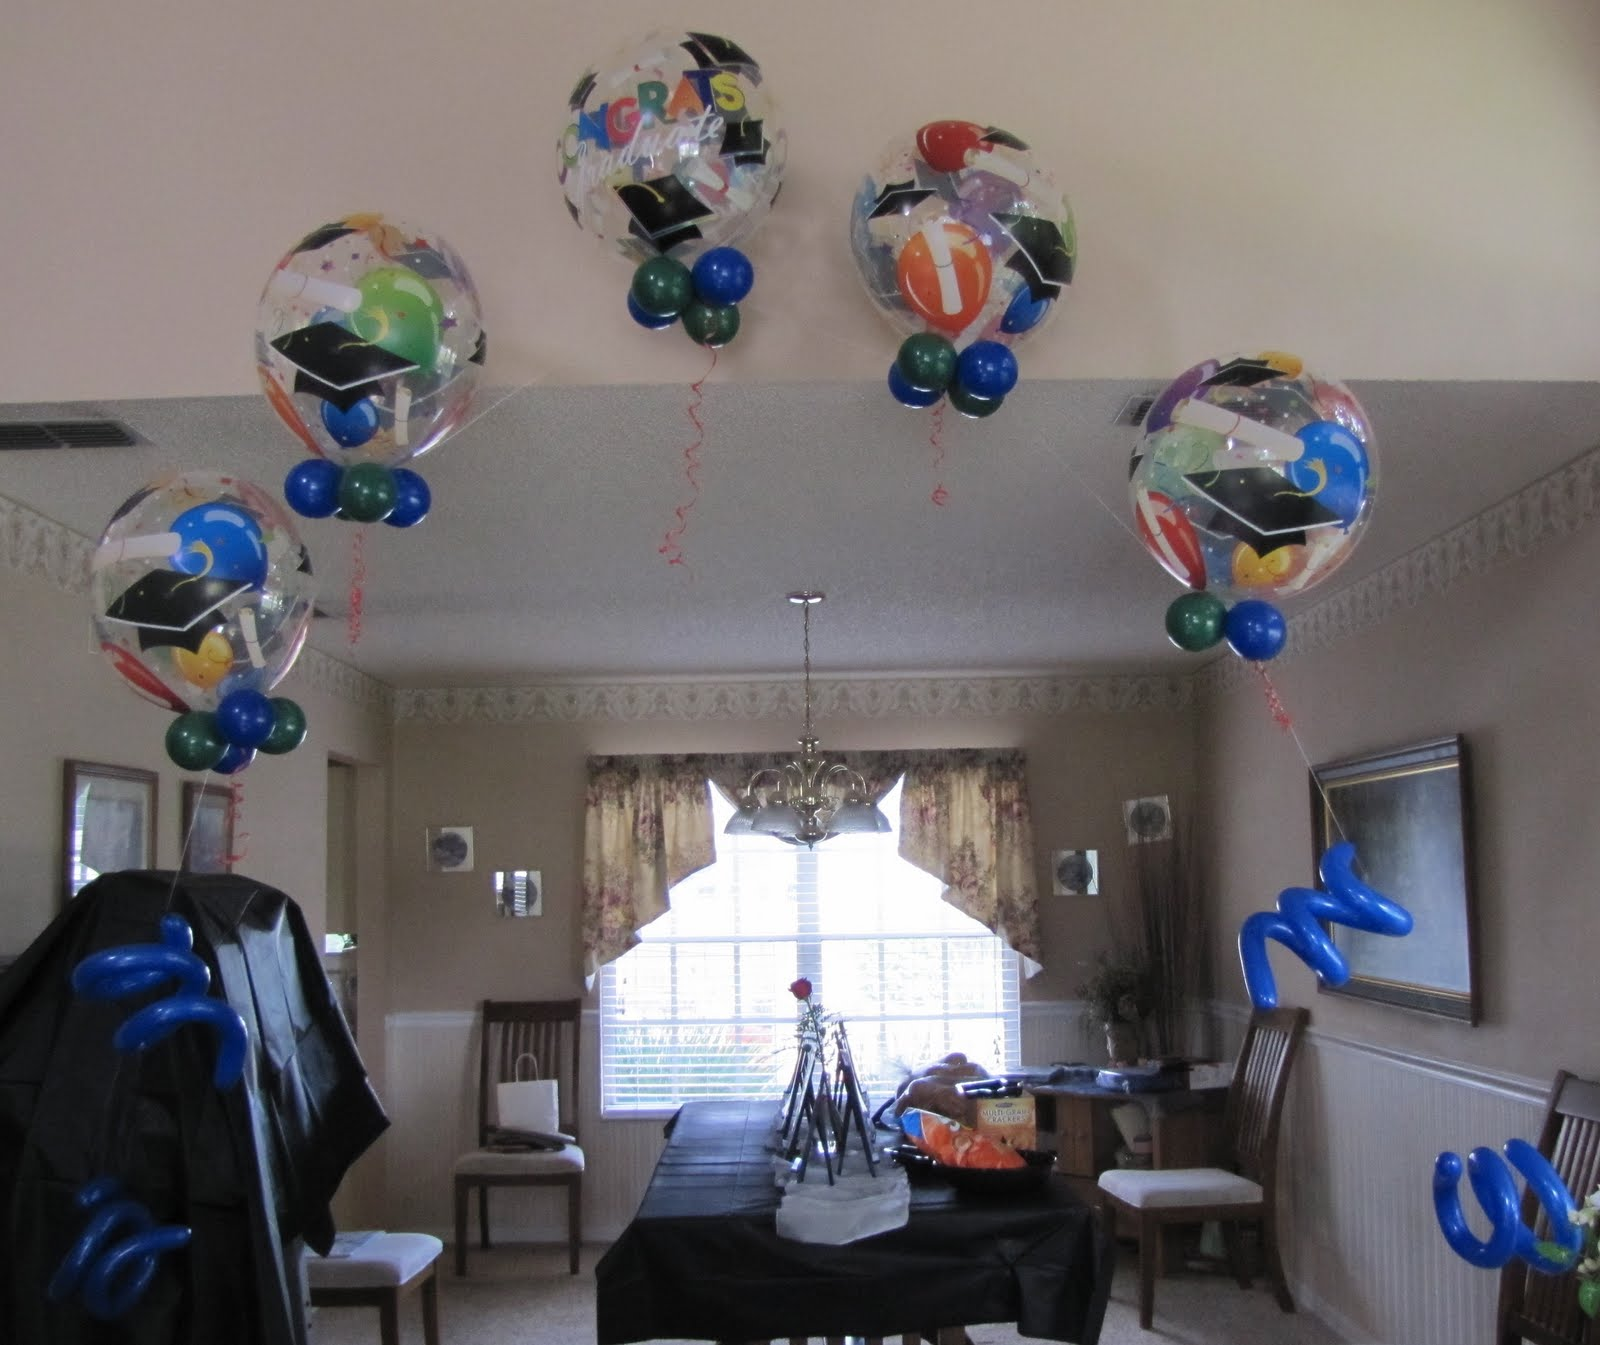 Party people event decorating company mckeel academy for Balloon decoration ideas for graduation